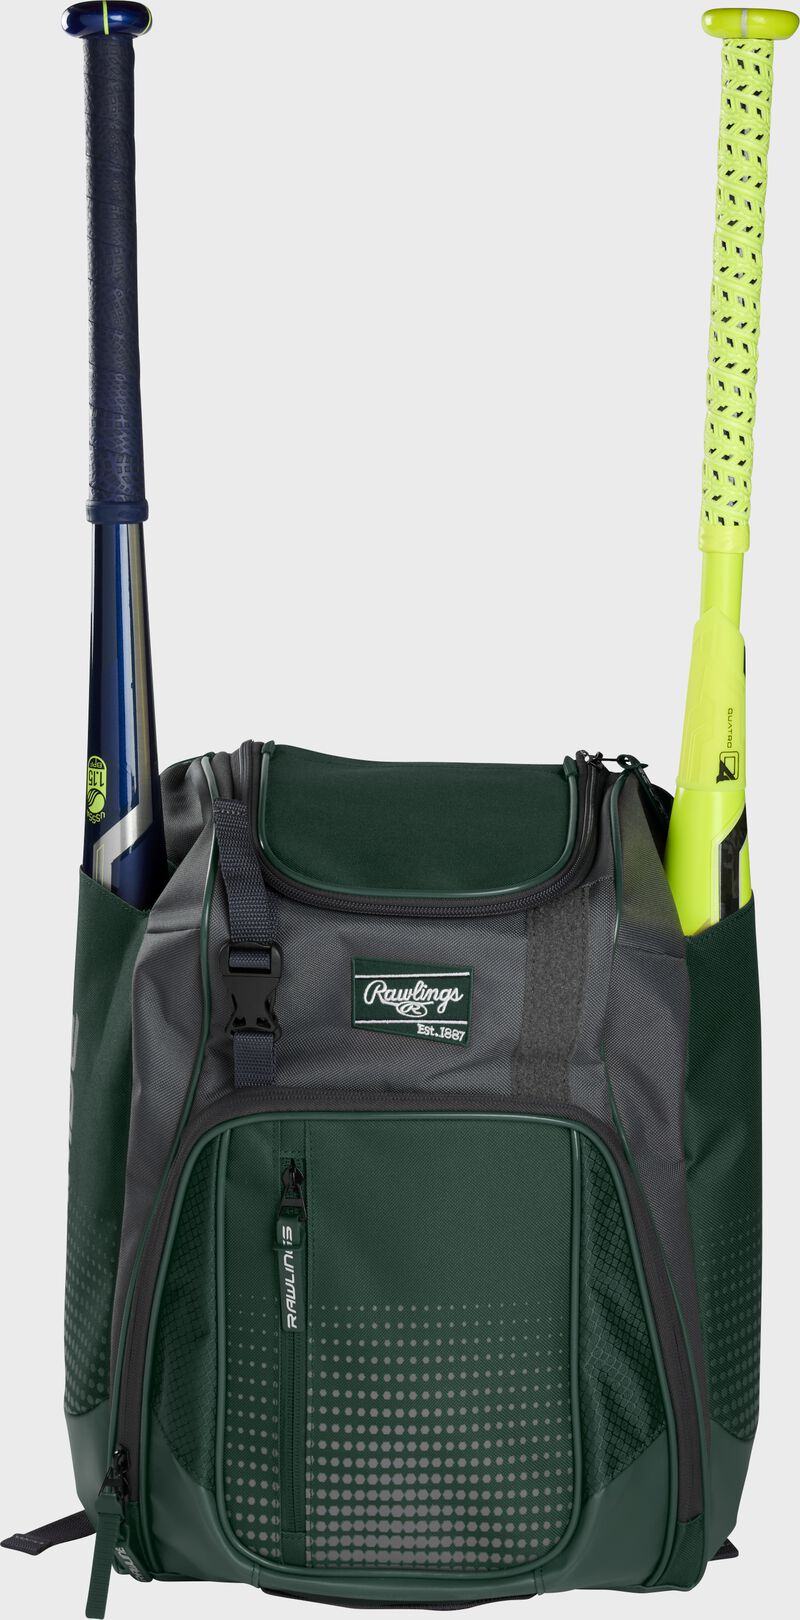 Front of a dark green Rawlings Franchise baseball backpack with two bats in the side sleeves - SKU: FRANBP-DG